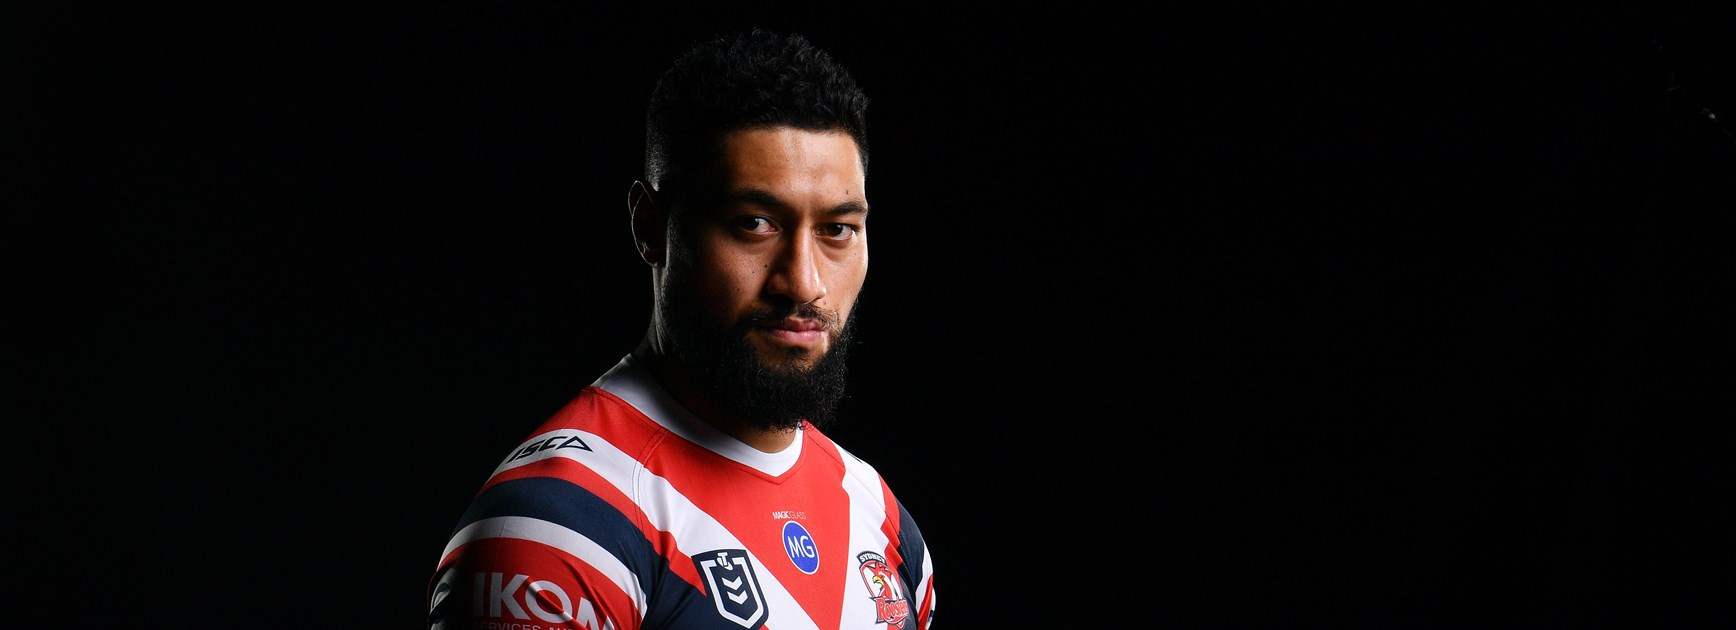 Feathers will fly as Roosters teammates go head to head